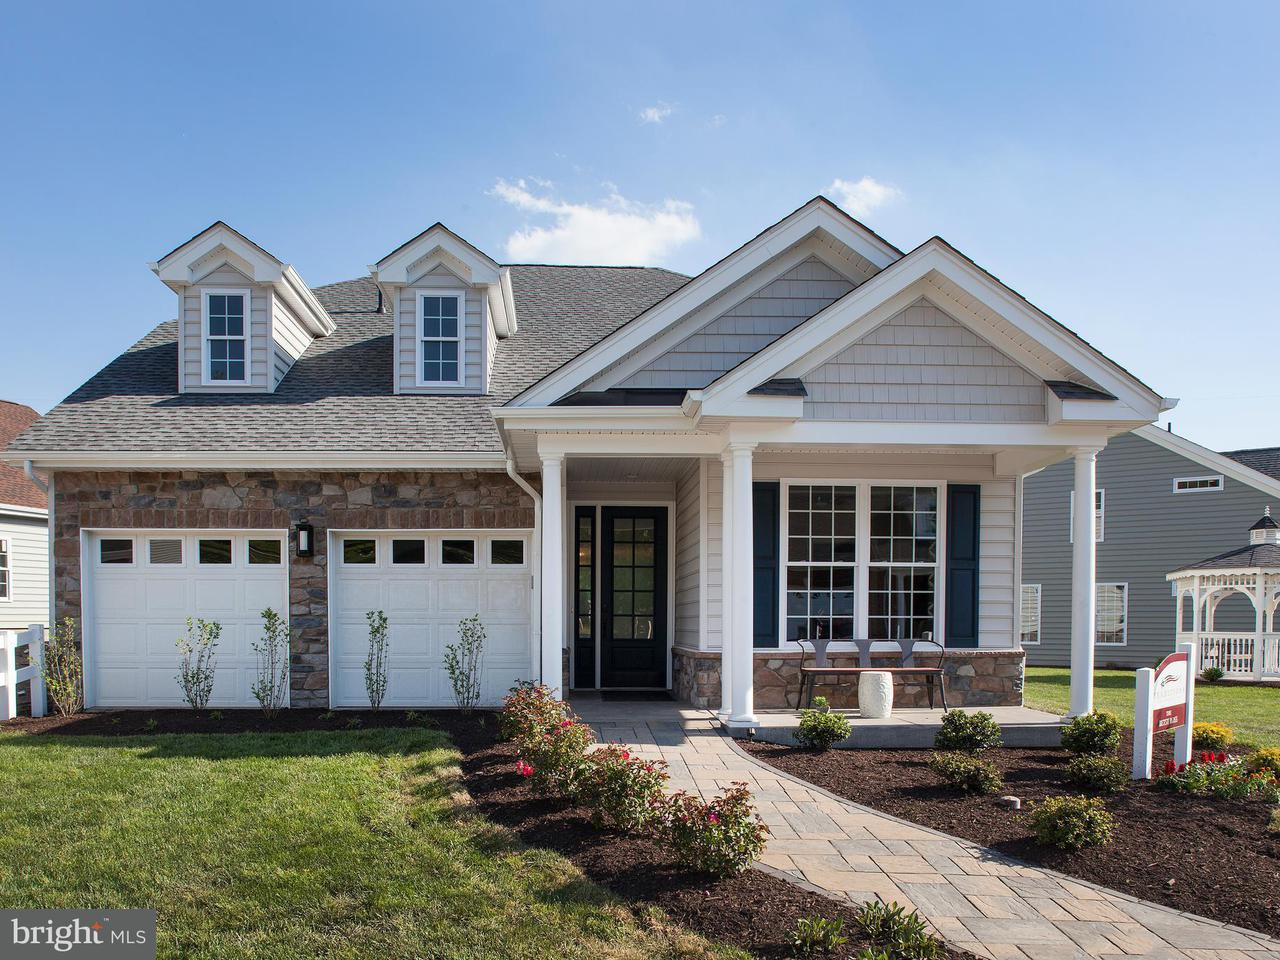 Single Family for Sale at General Dr #456 Mechanicsburg, Pennsylvania 17050 United States